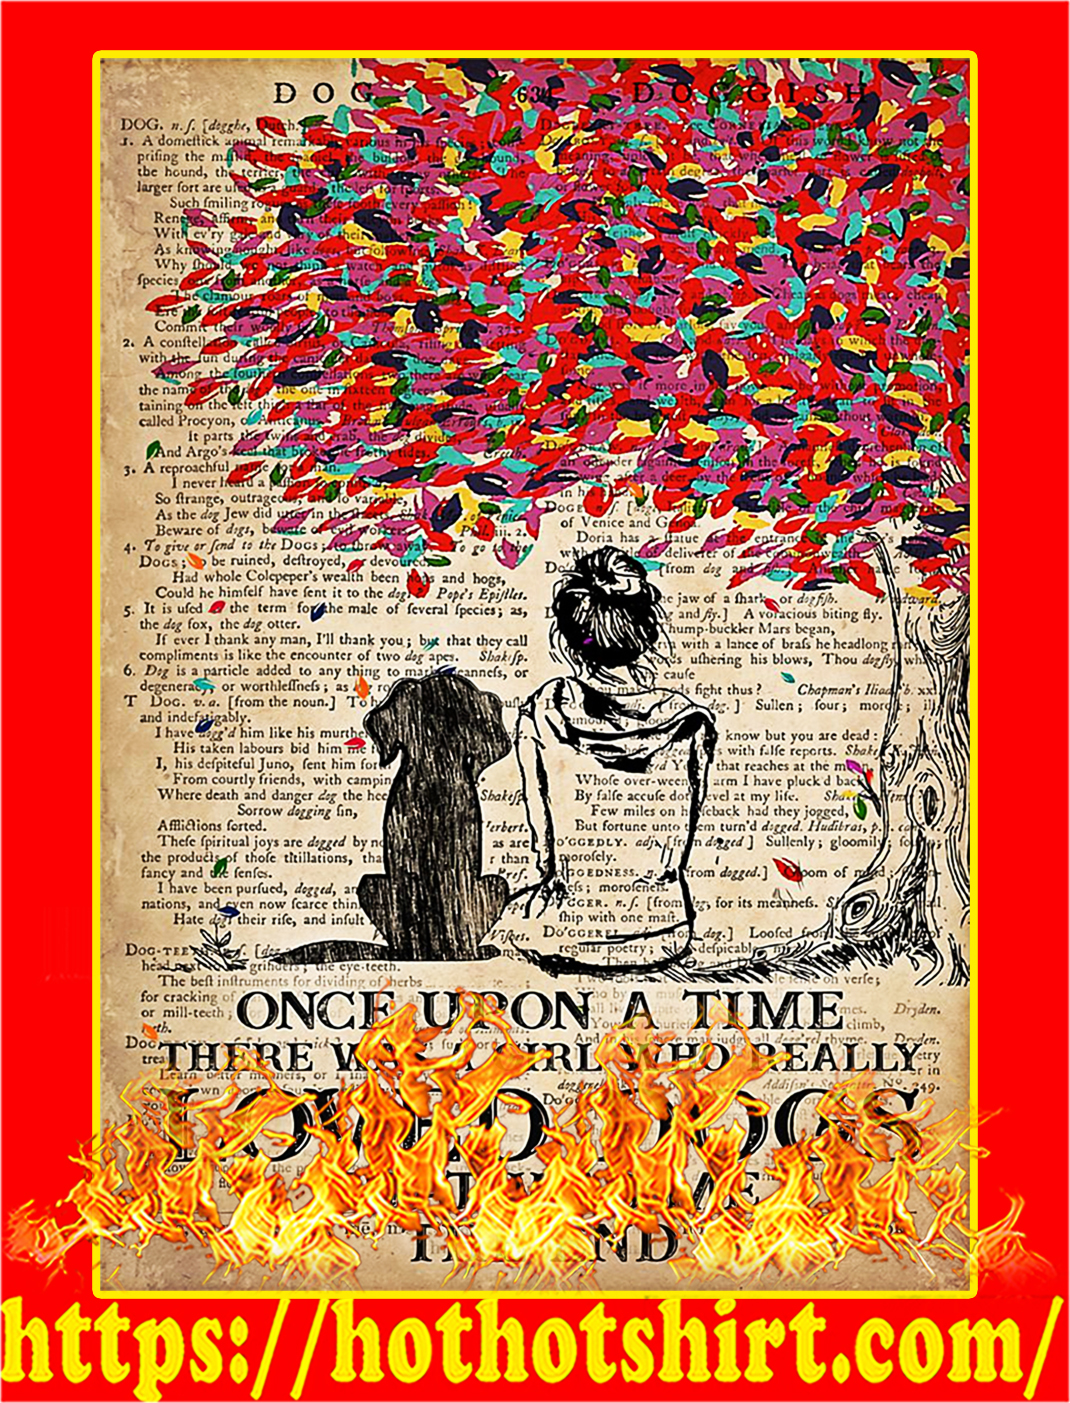 Once upon a time there was a girl who loved dogs poster - A2